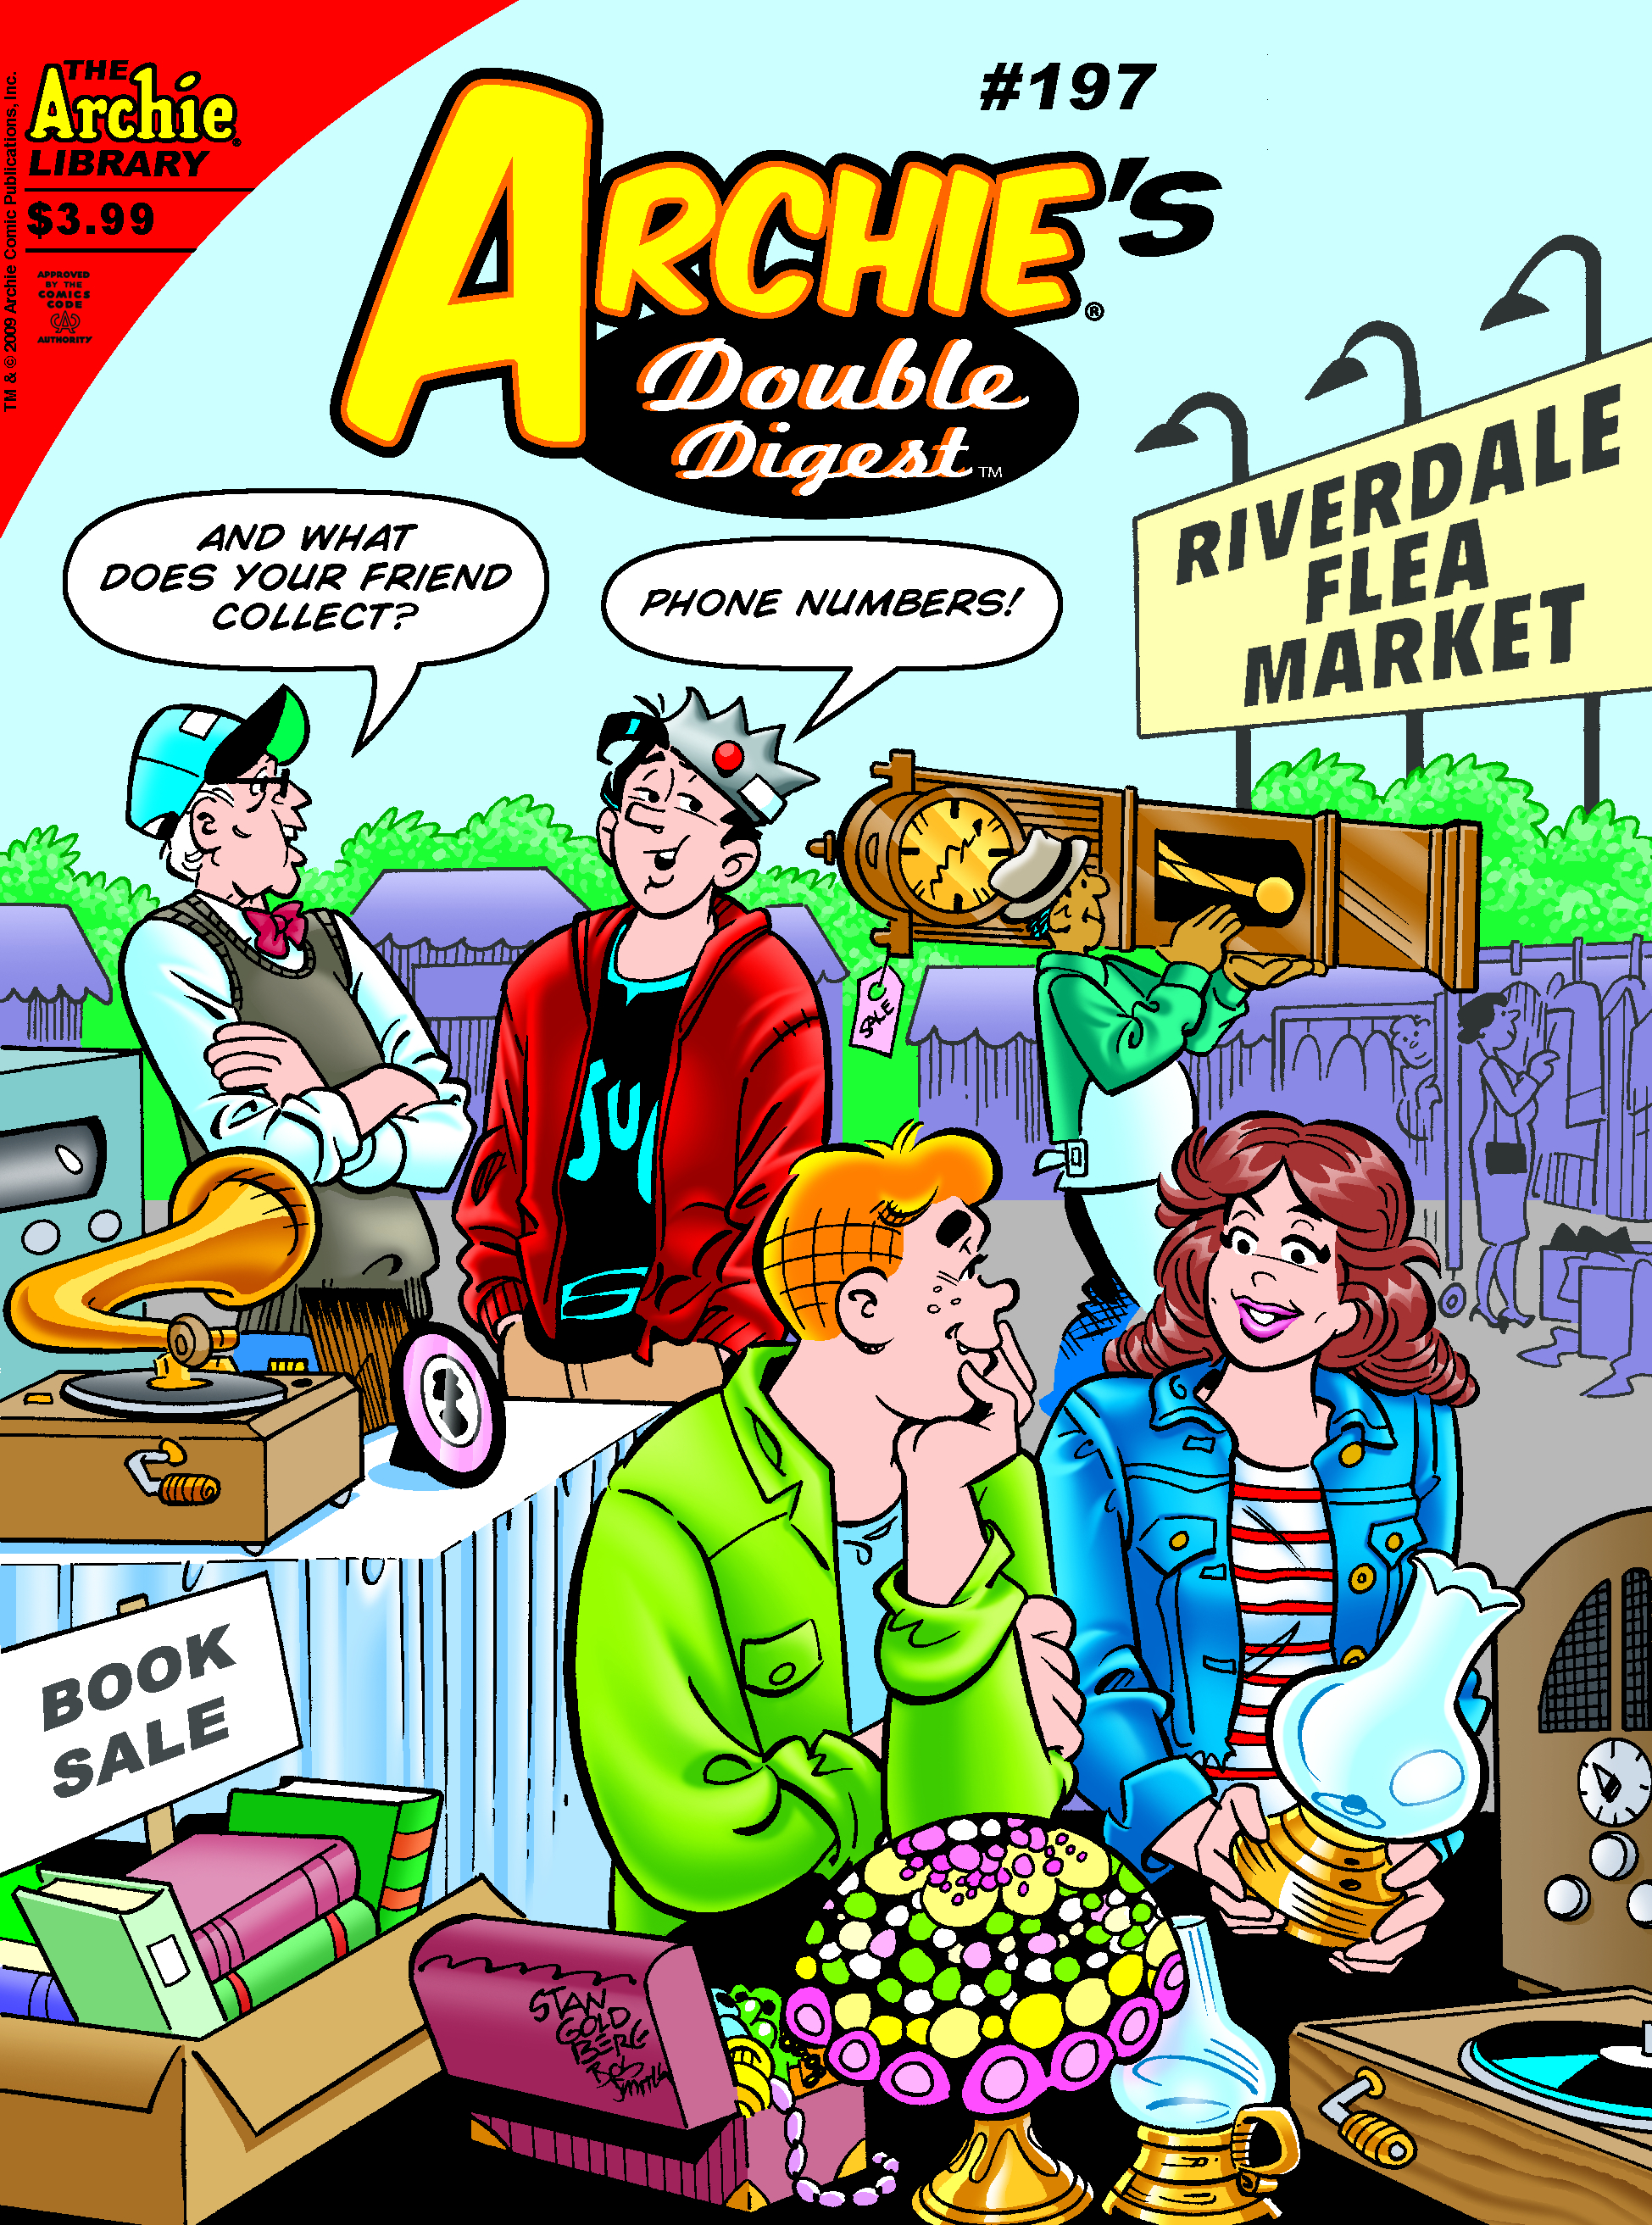 ARCHIE DOUBLE DIGEST #197 (NOTE PRICE)